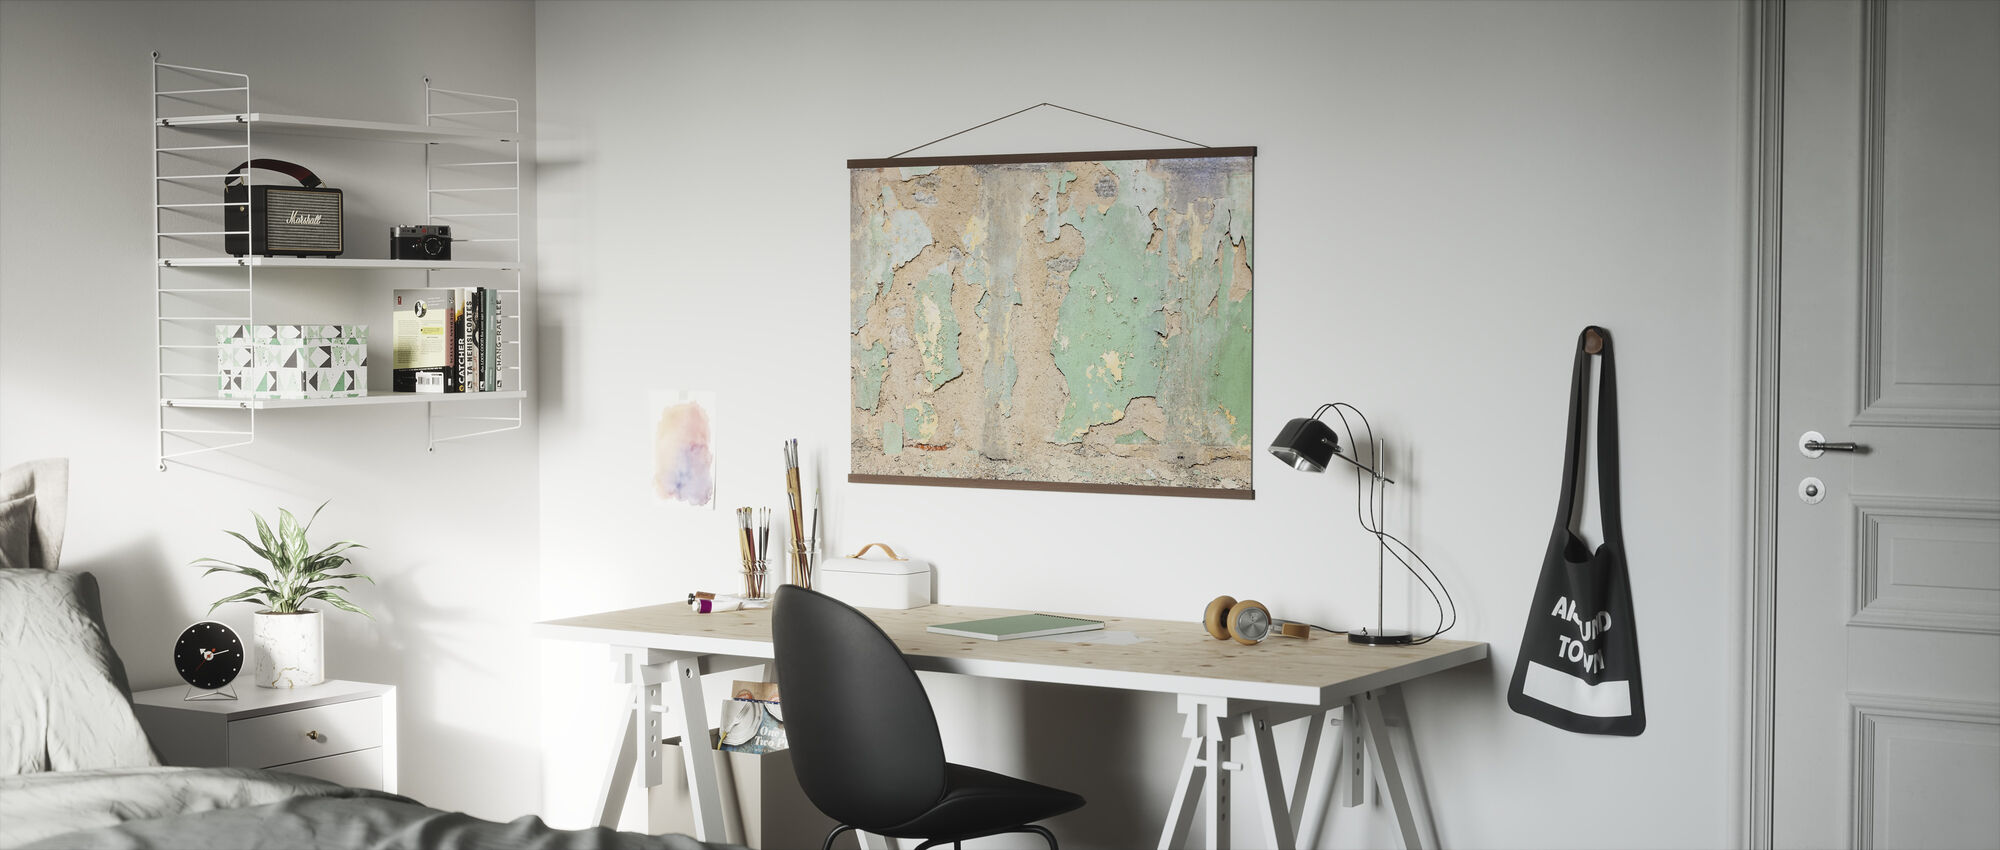 Worned Out Wallpaper - Poster - Office